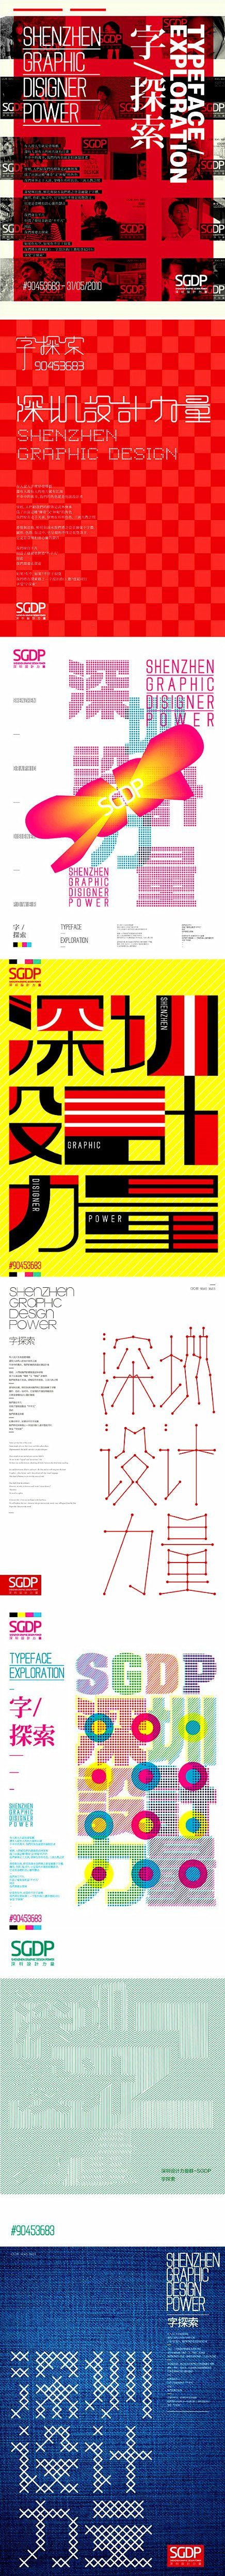 "深圳设计力量 ""字探索"" : Shenzhen Graphic Designer Power ""Typeface / Exploration"""